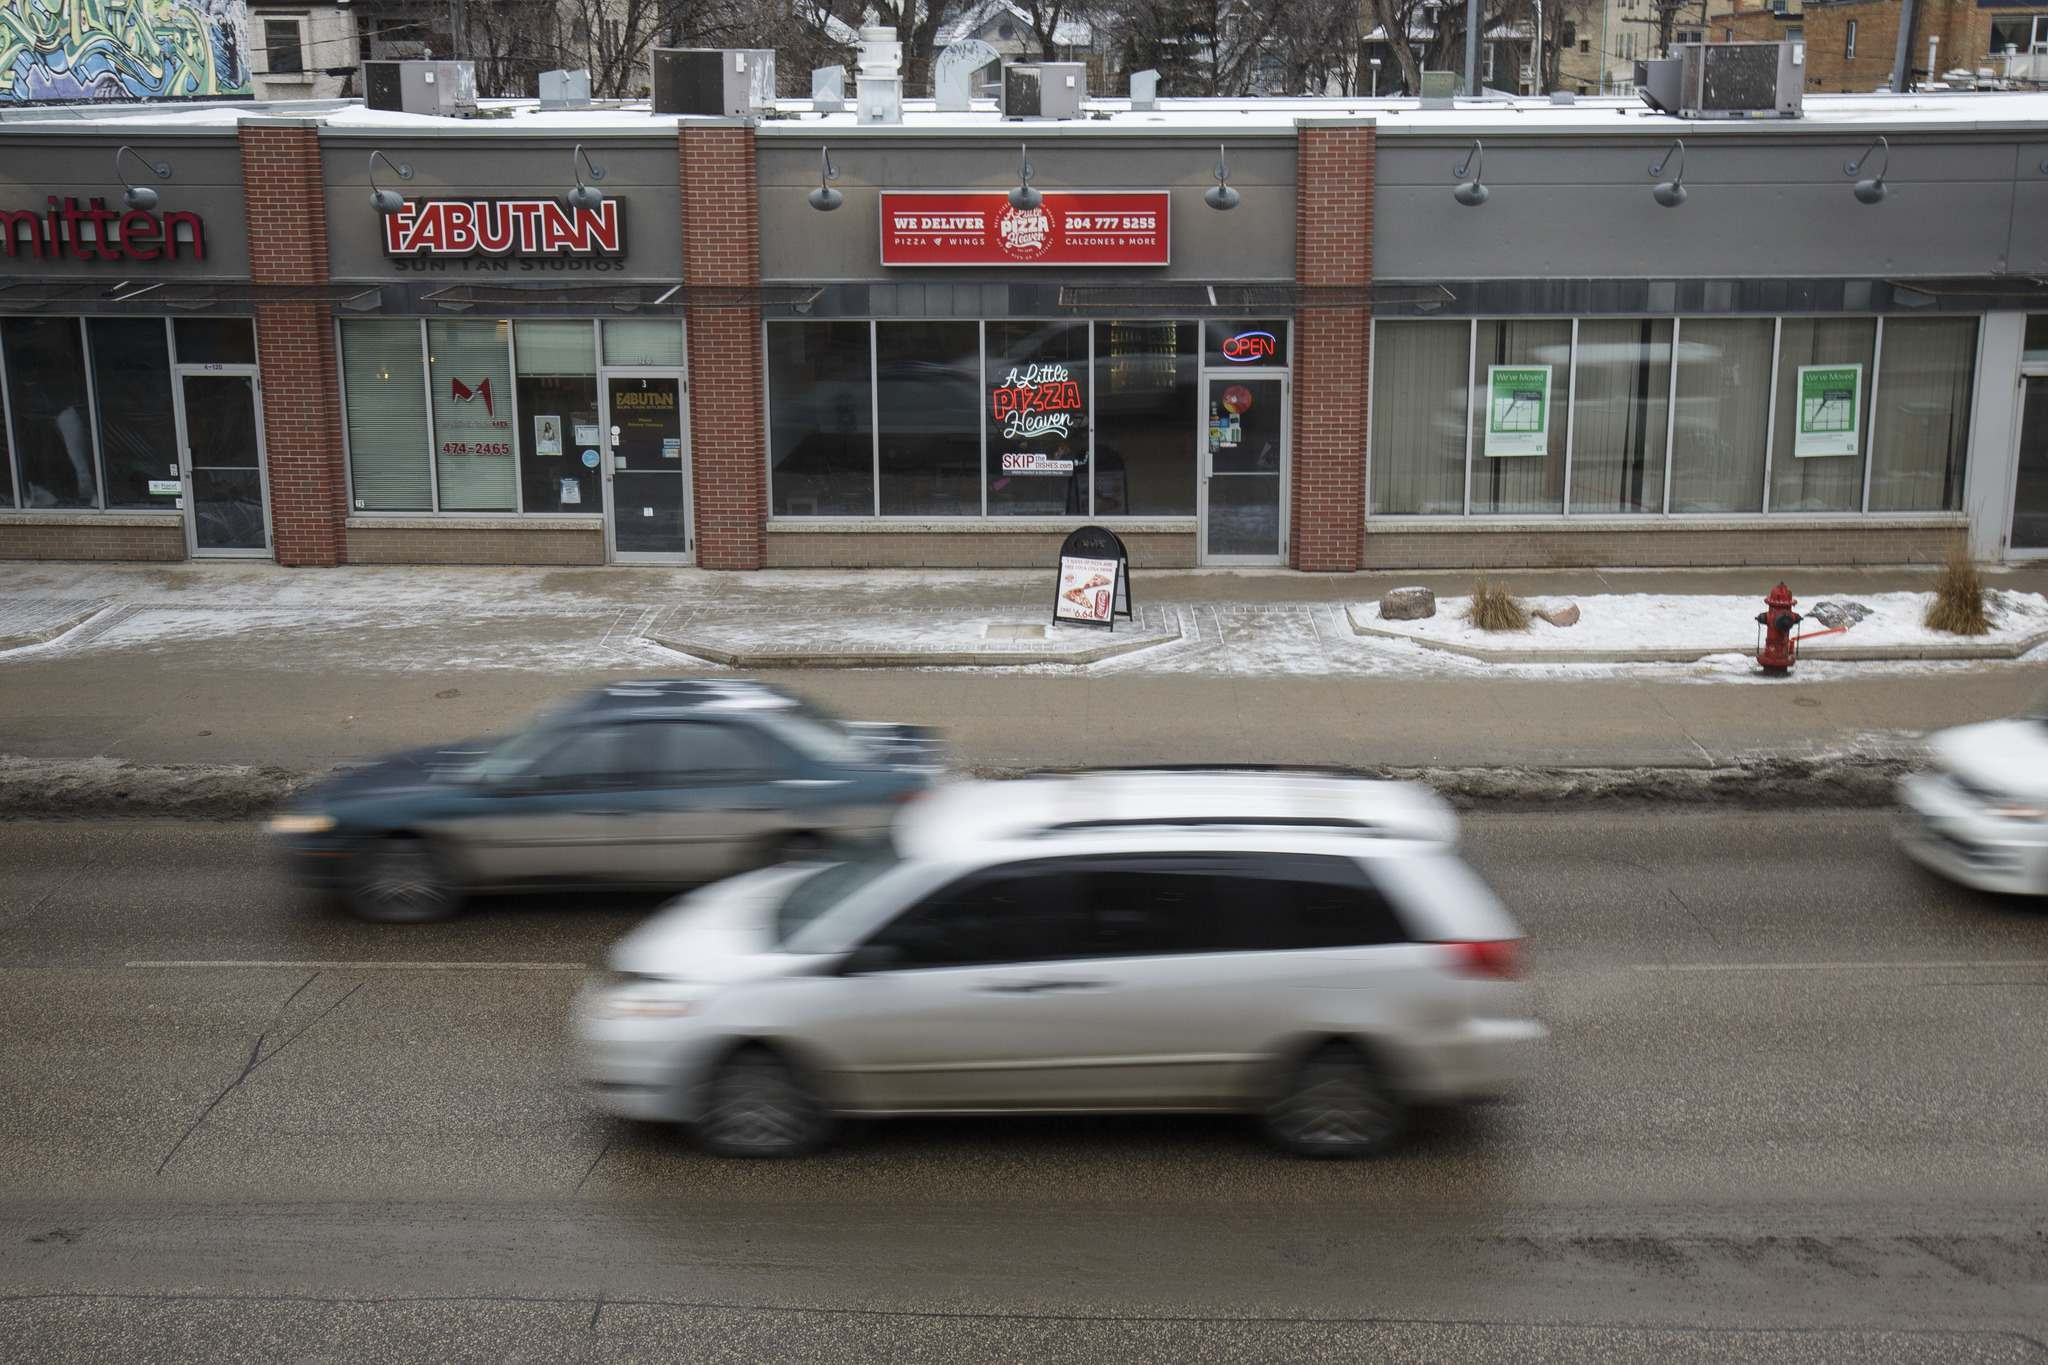 MIKE DEAL / WINNIPEG FREE PRESS<p>A Little Pizza Heaven pizza place in Osborne Village at 120 Osborne Street.</p>